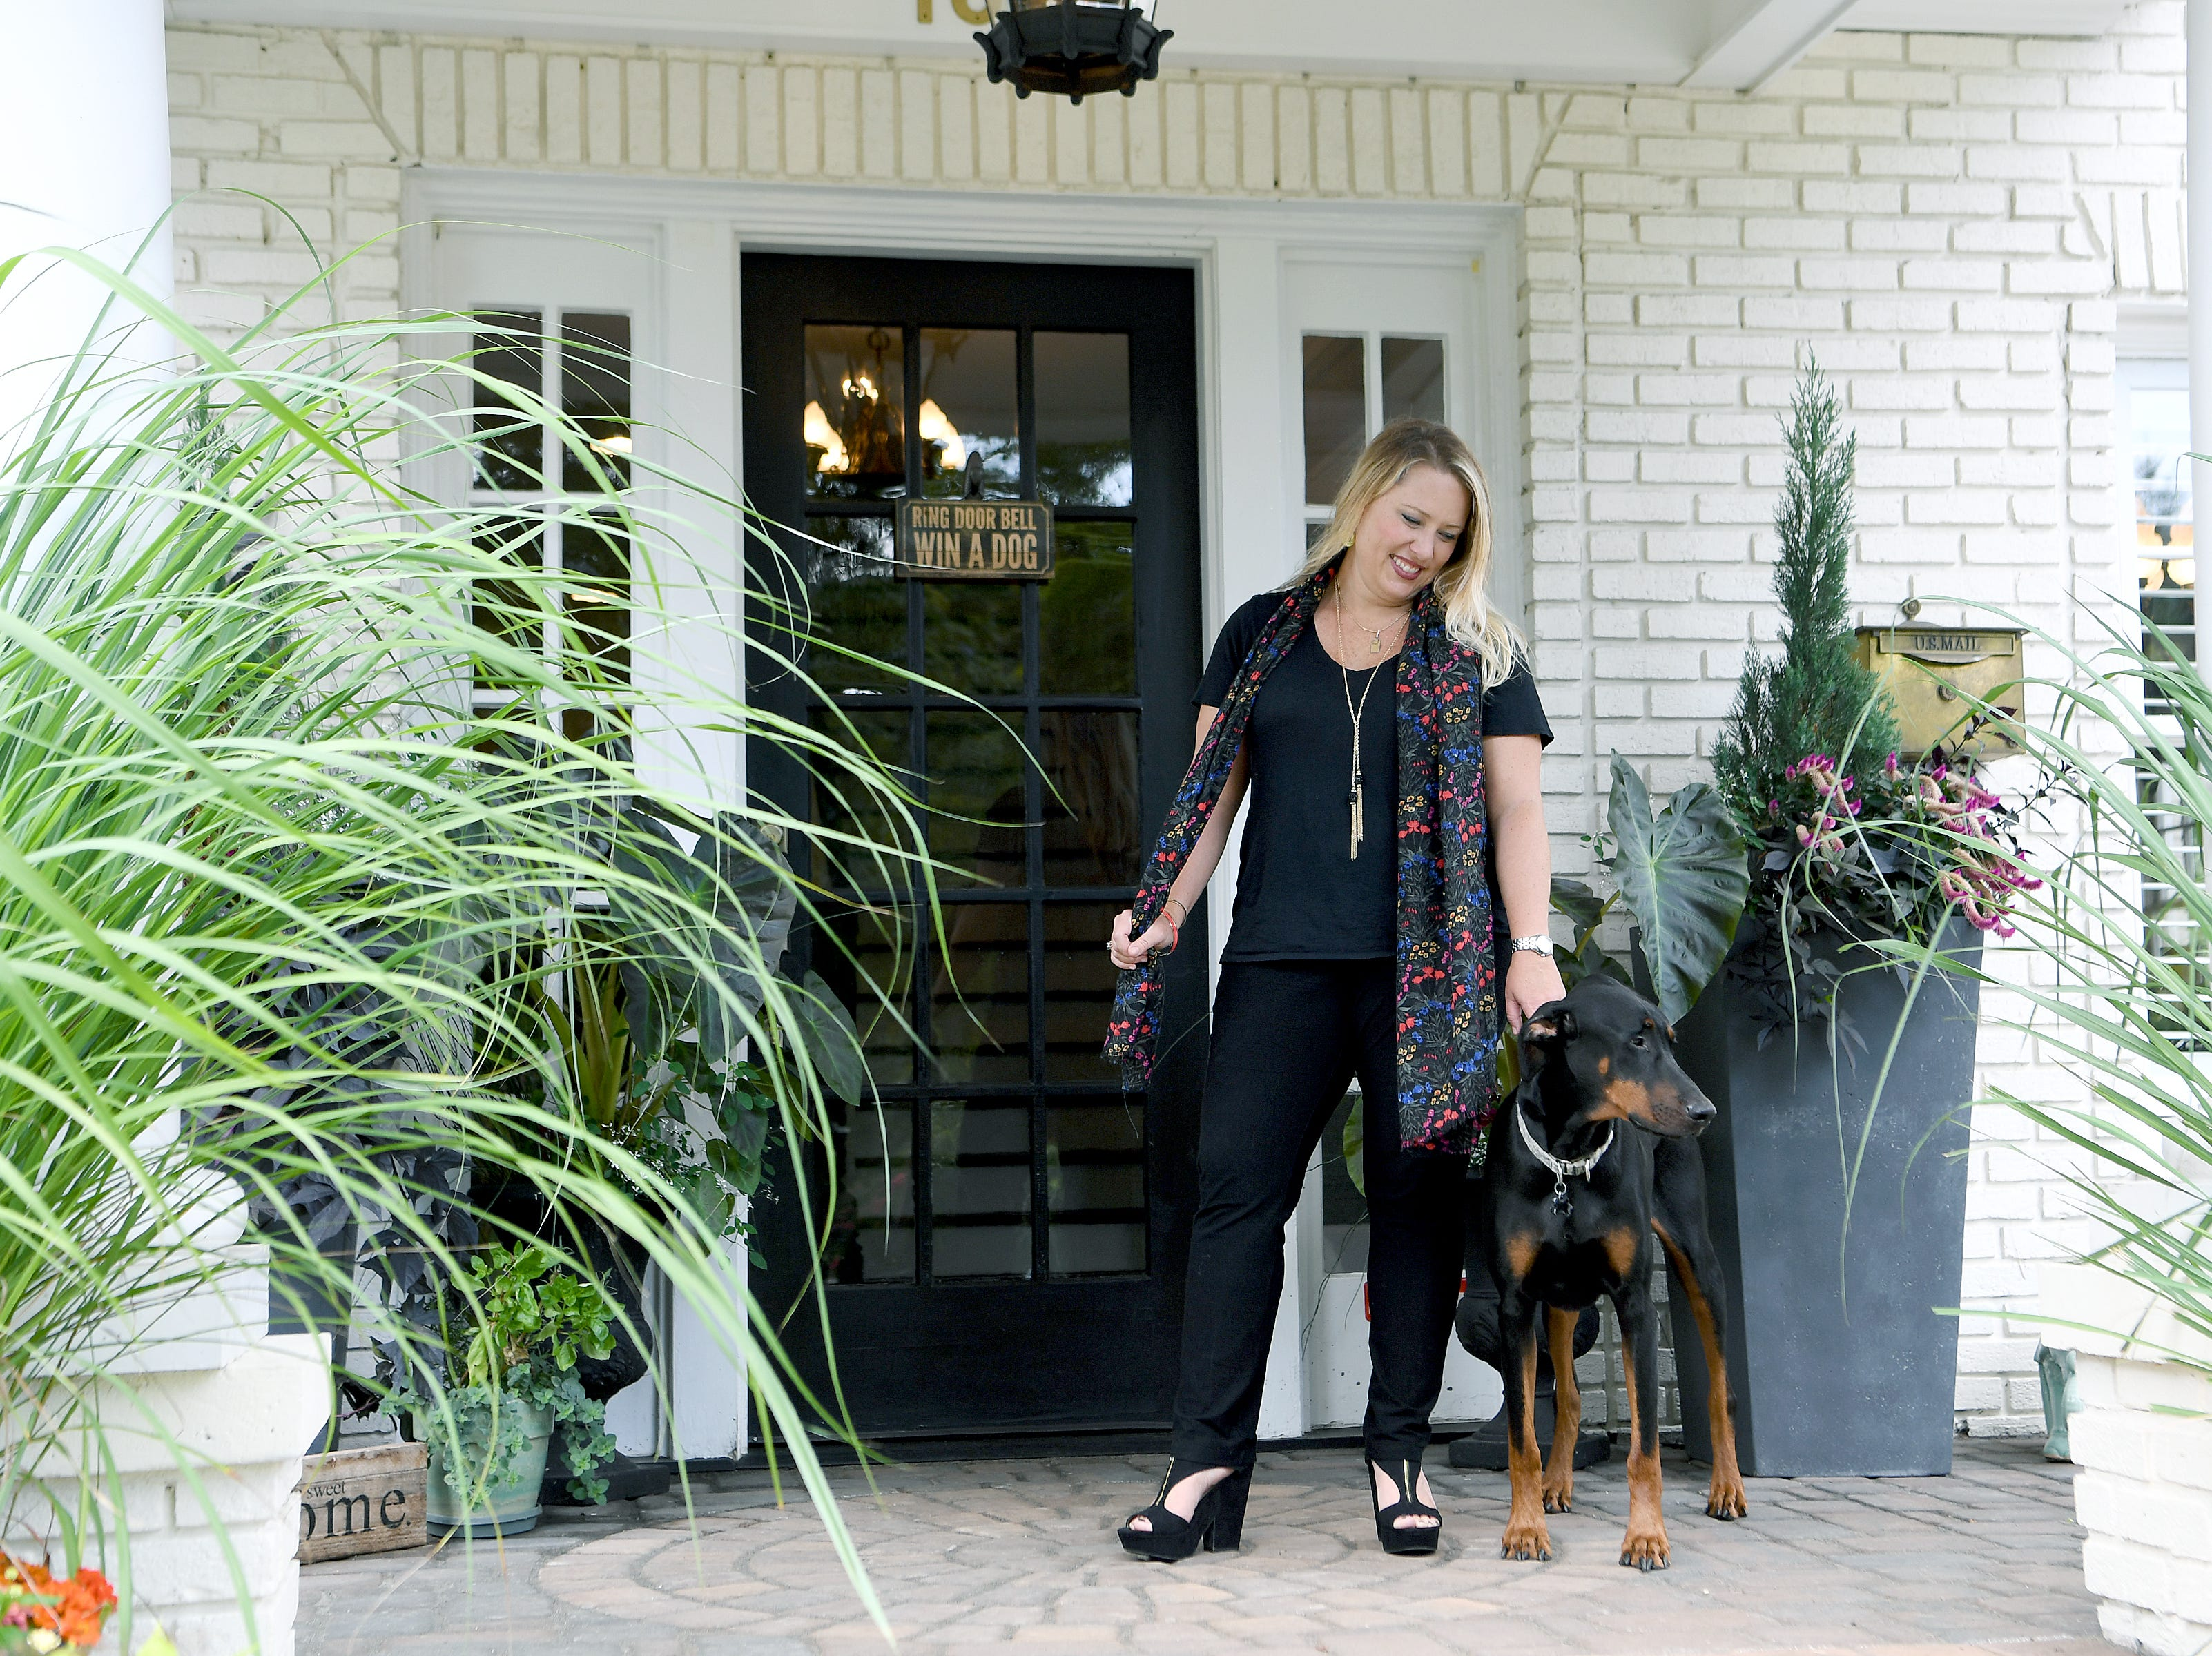 Moriah Bryant with one of her dogs, Duncan, on the porch of her family's North Asheville home on Tuesday, Aug. 21, 2018. The house, which was built in 1925, features four bedrooms, a kids playroom, two full bathrooms and a half bath.